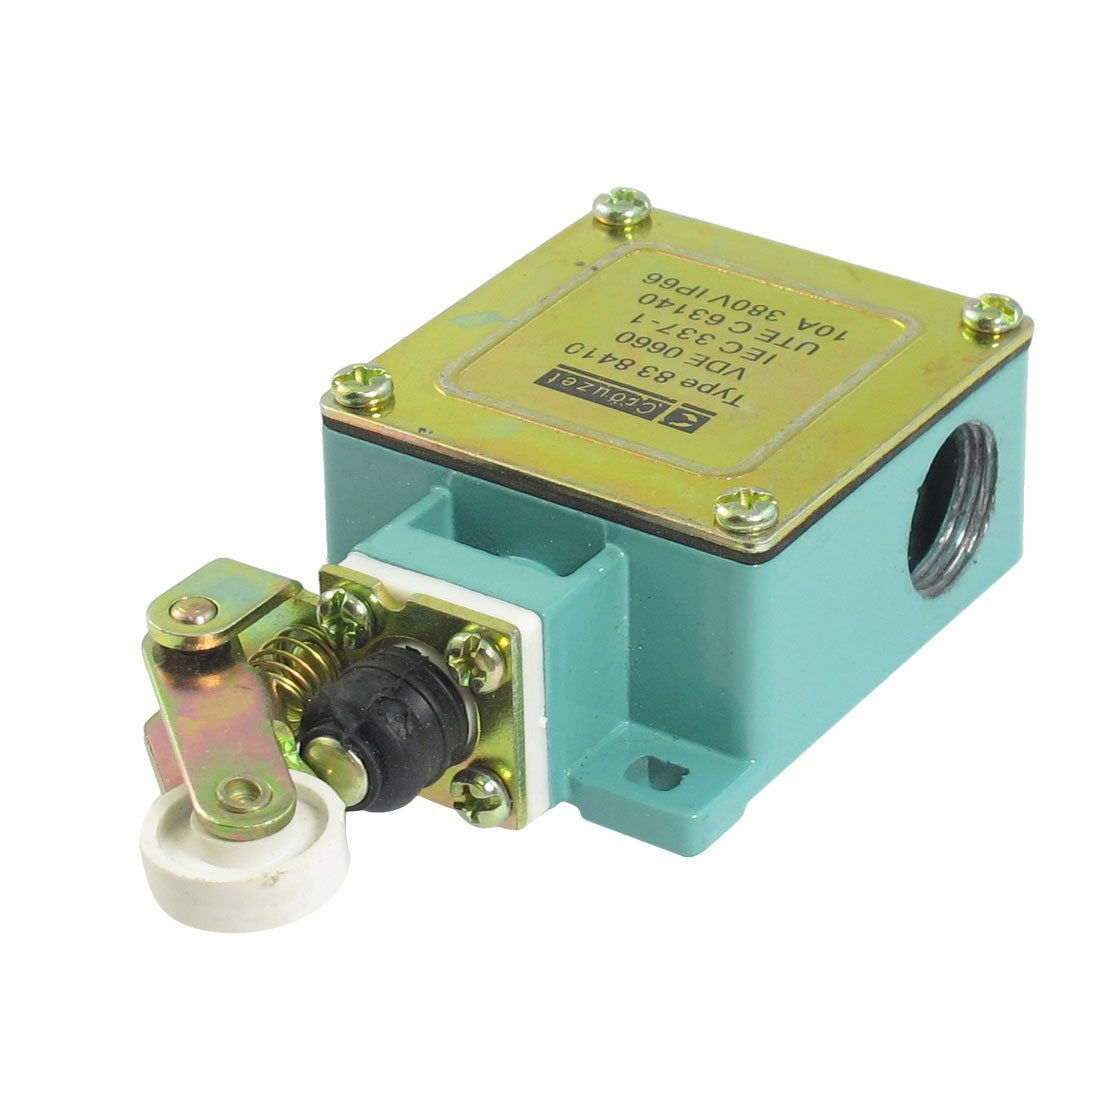 uxcell 838410 AC 380V 10A Momentary Roller Lever Actuator Limit Switch